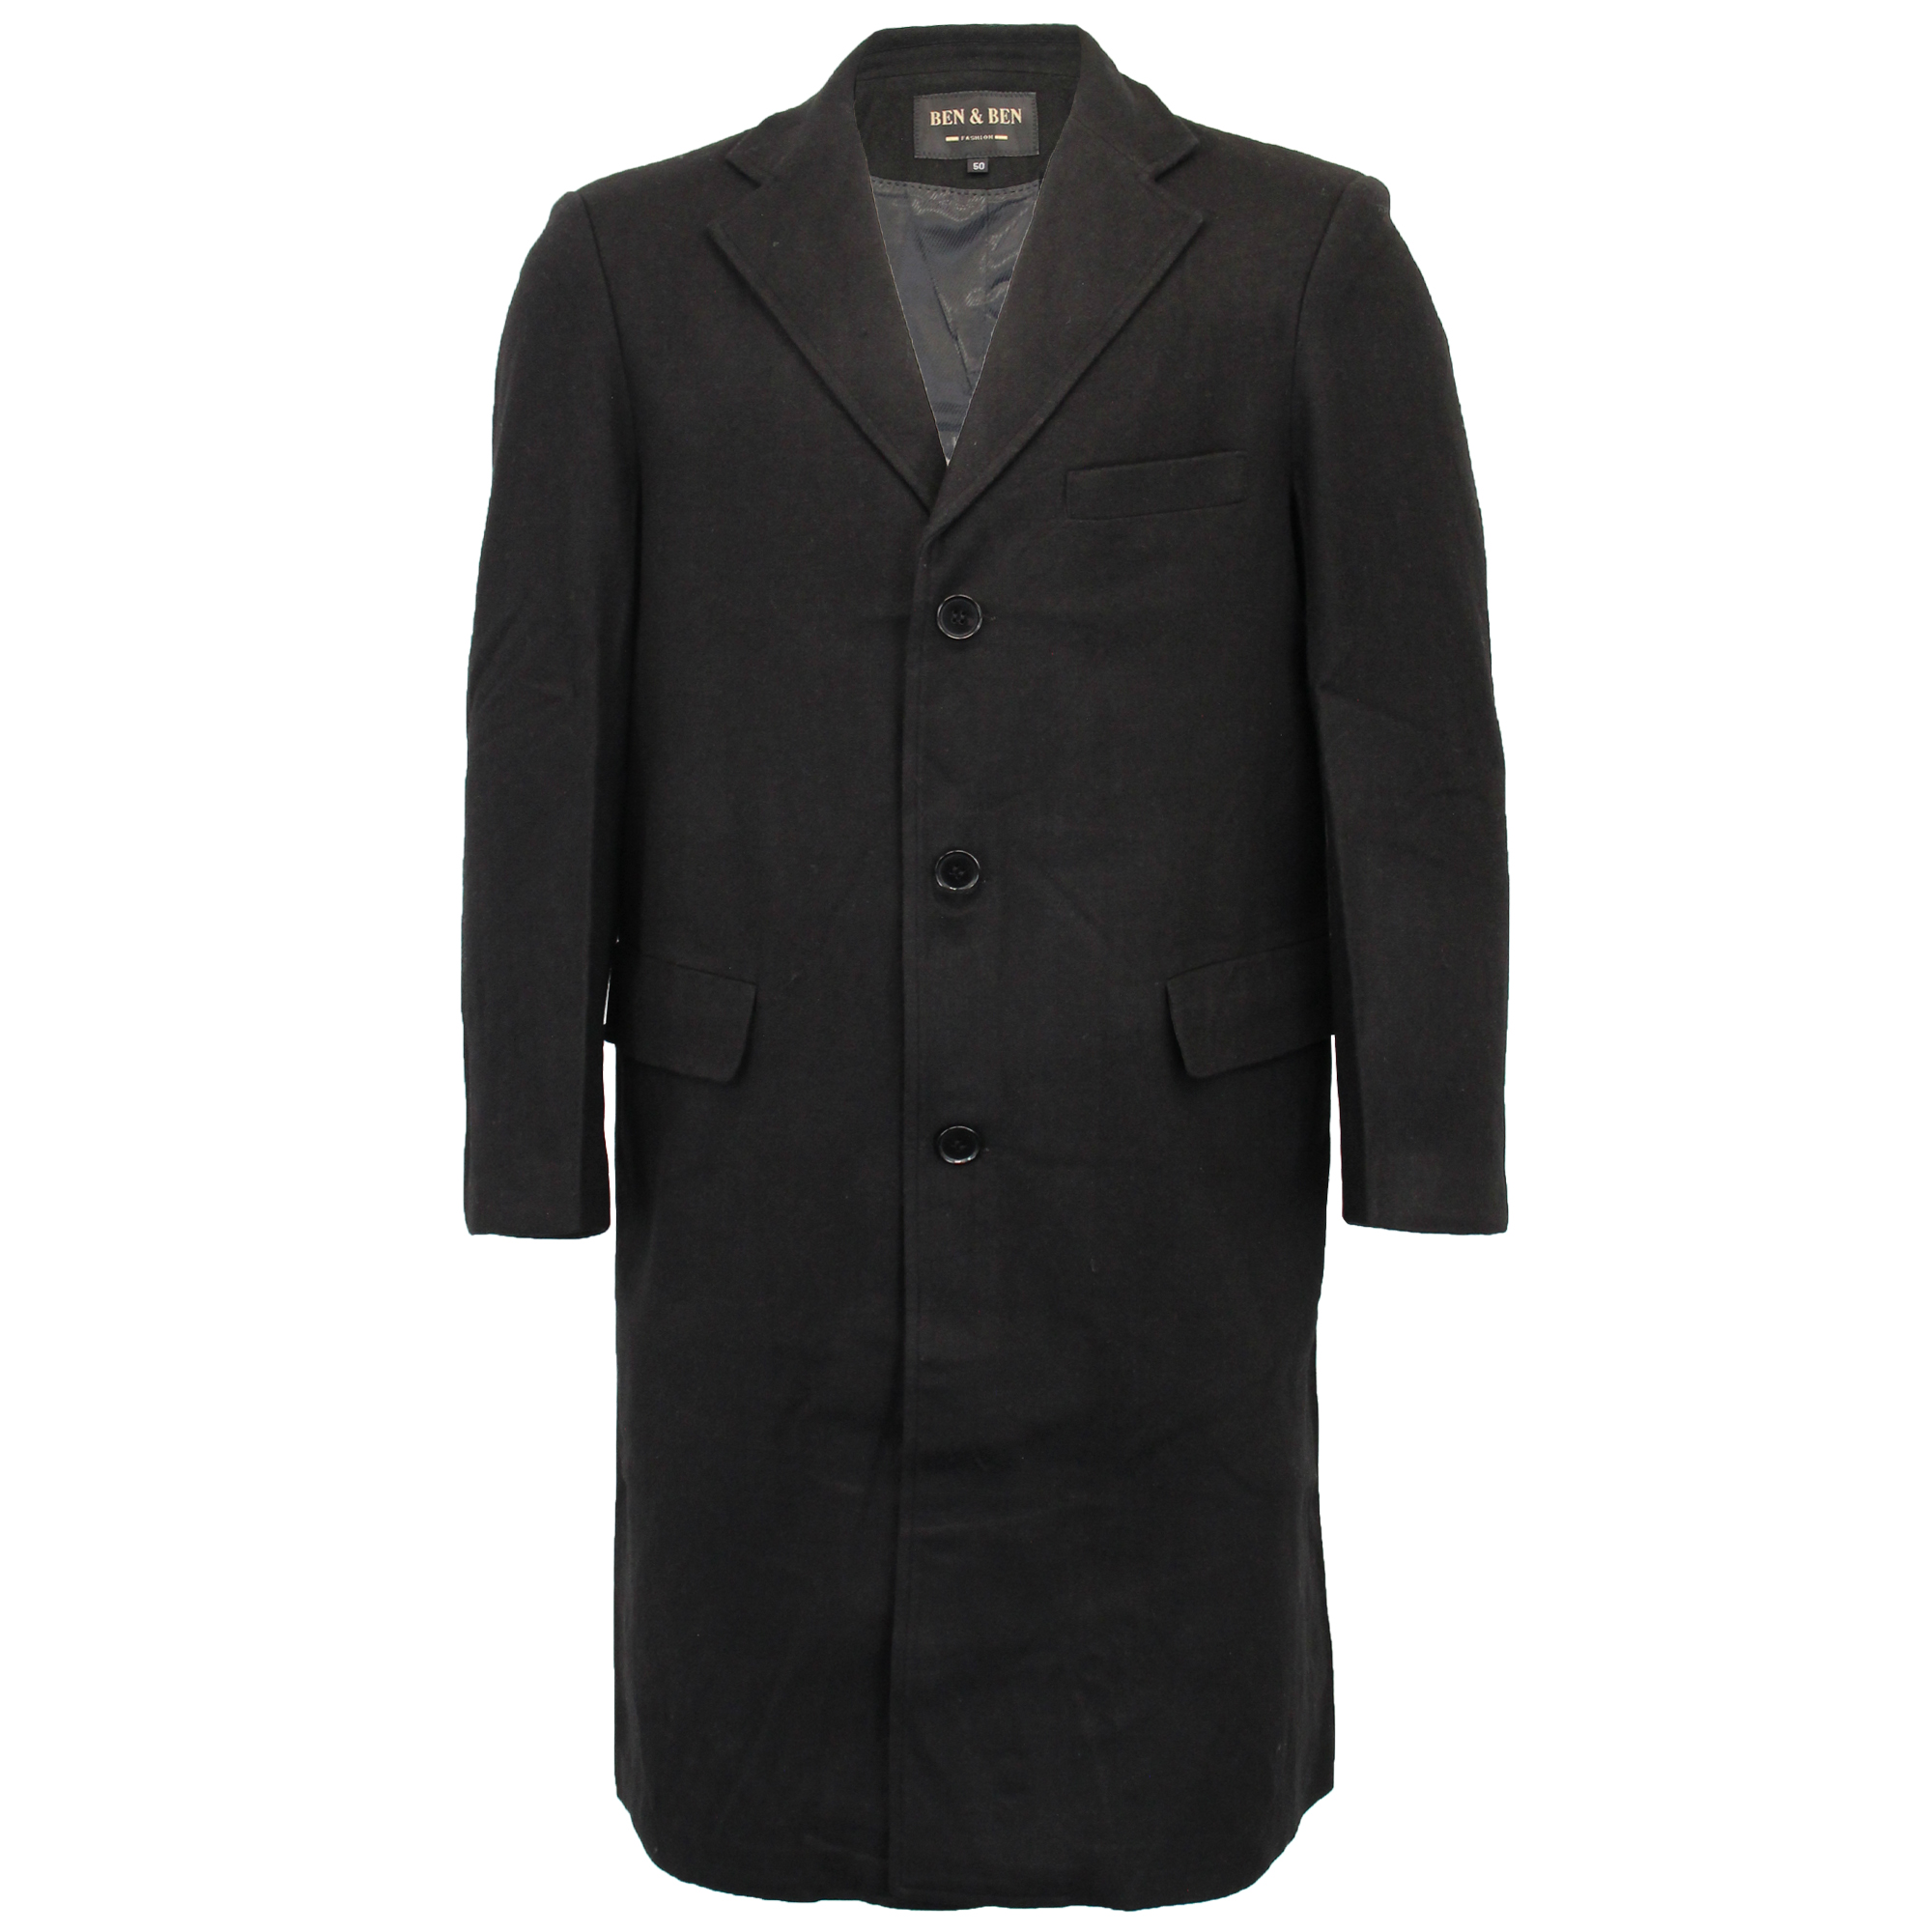 Mens-Wool-Mix-Jacket-Long-Trench-Coat-Collared-Concealed-Button-Lined-Winter-New thumbnail 2